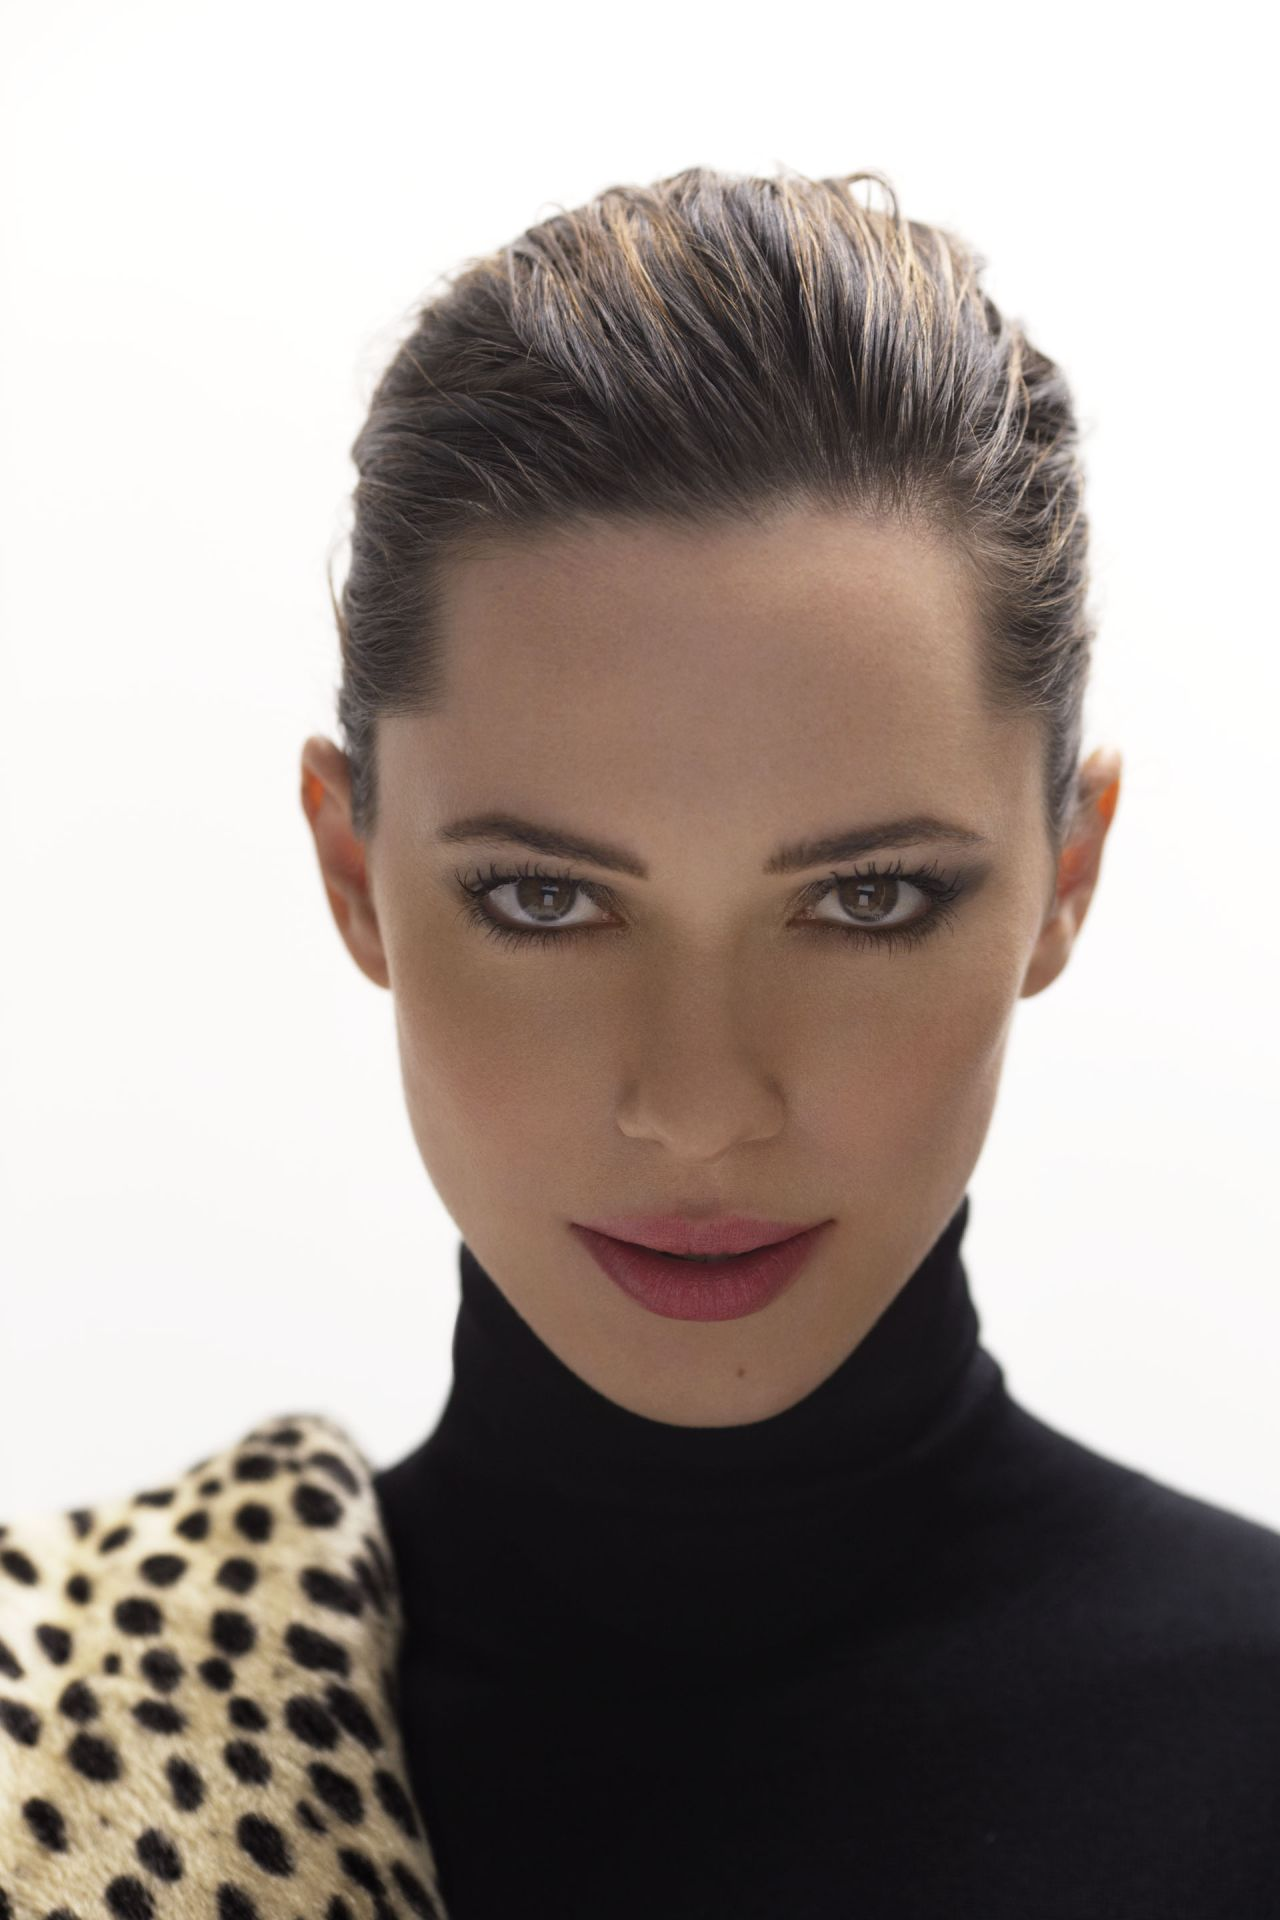 Rebecca Hall Photoshoot by Greg Williams - Year 2013